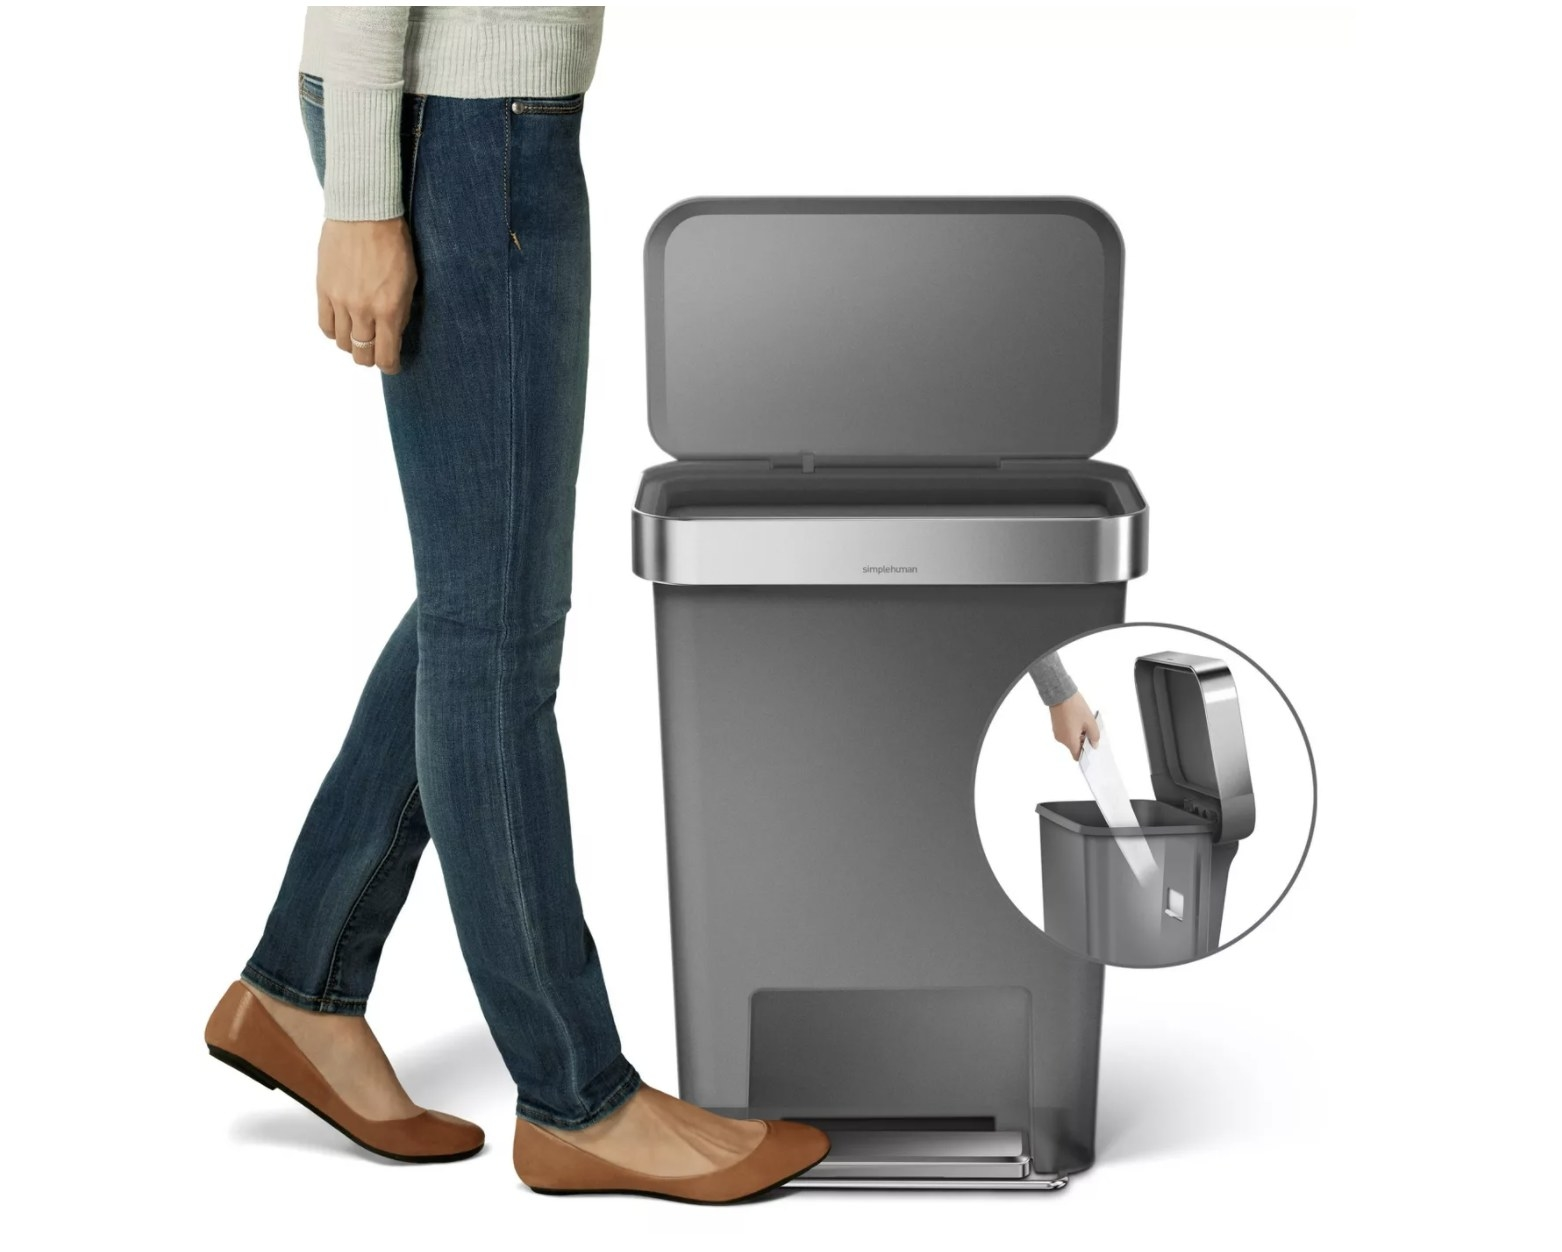 A model stepping on the bin opener foot pedal